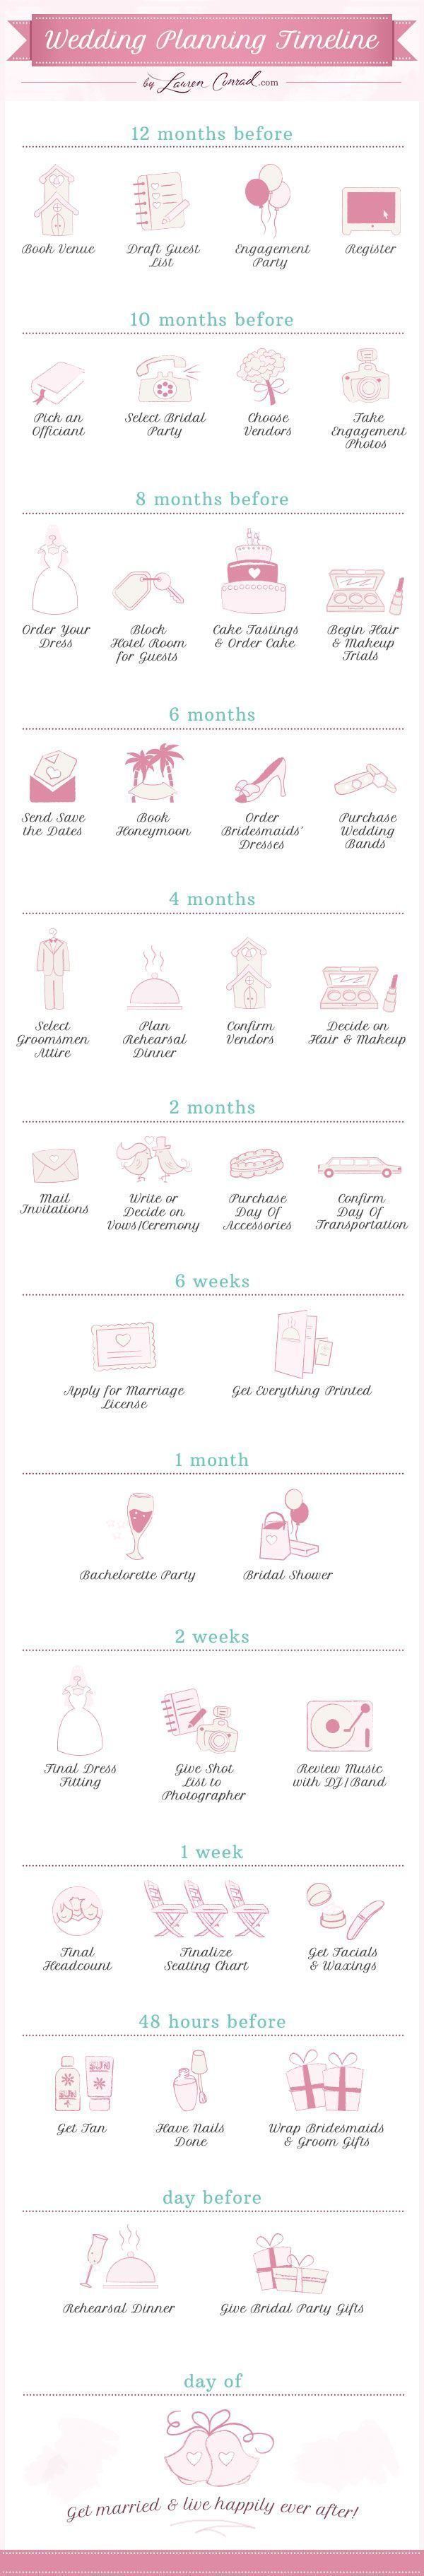 Wedding Planning Timeline - @LaurenConrad.com